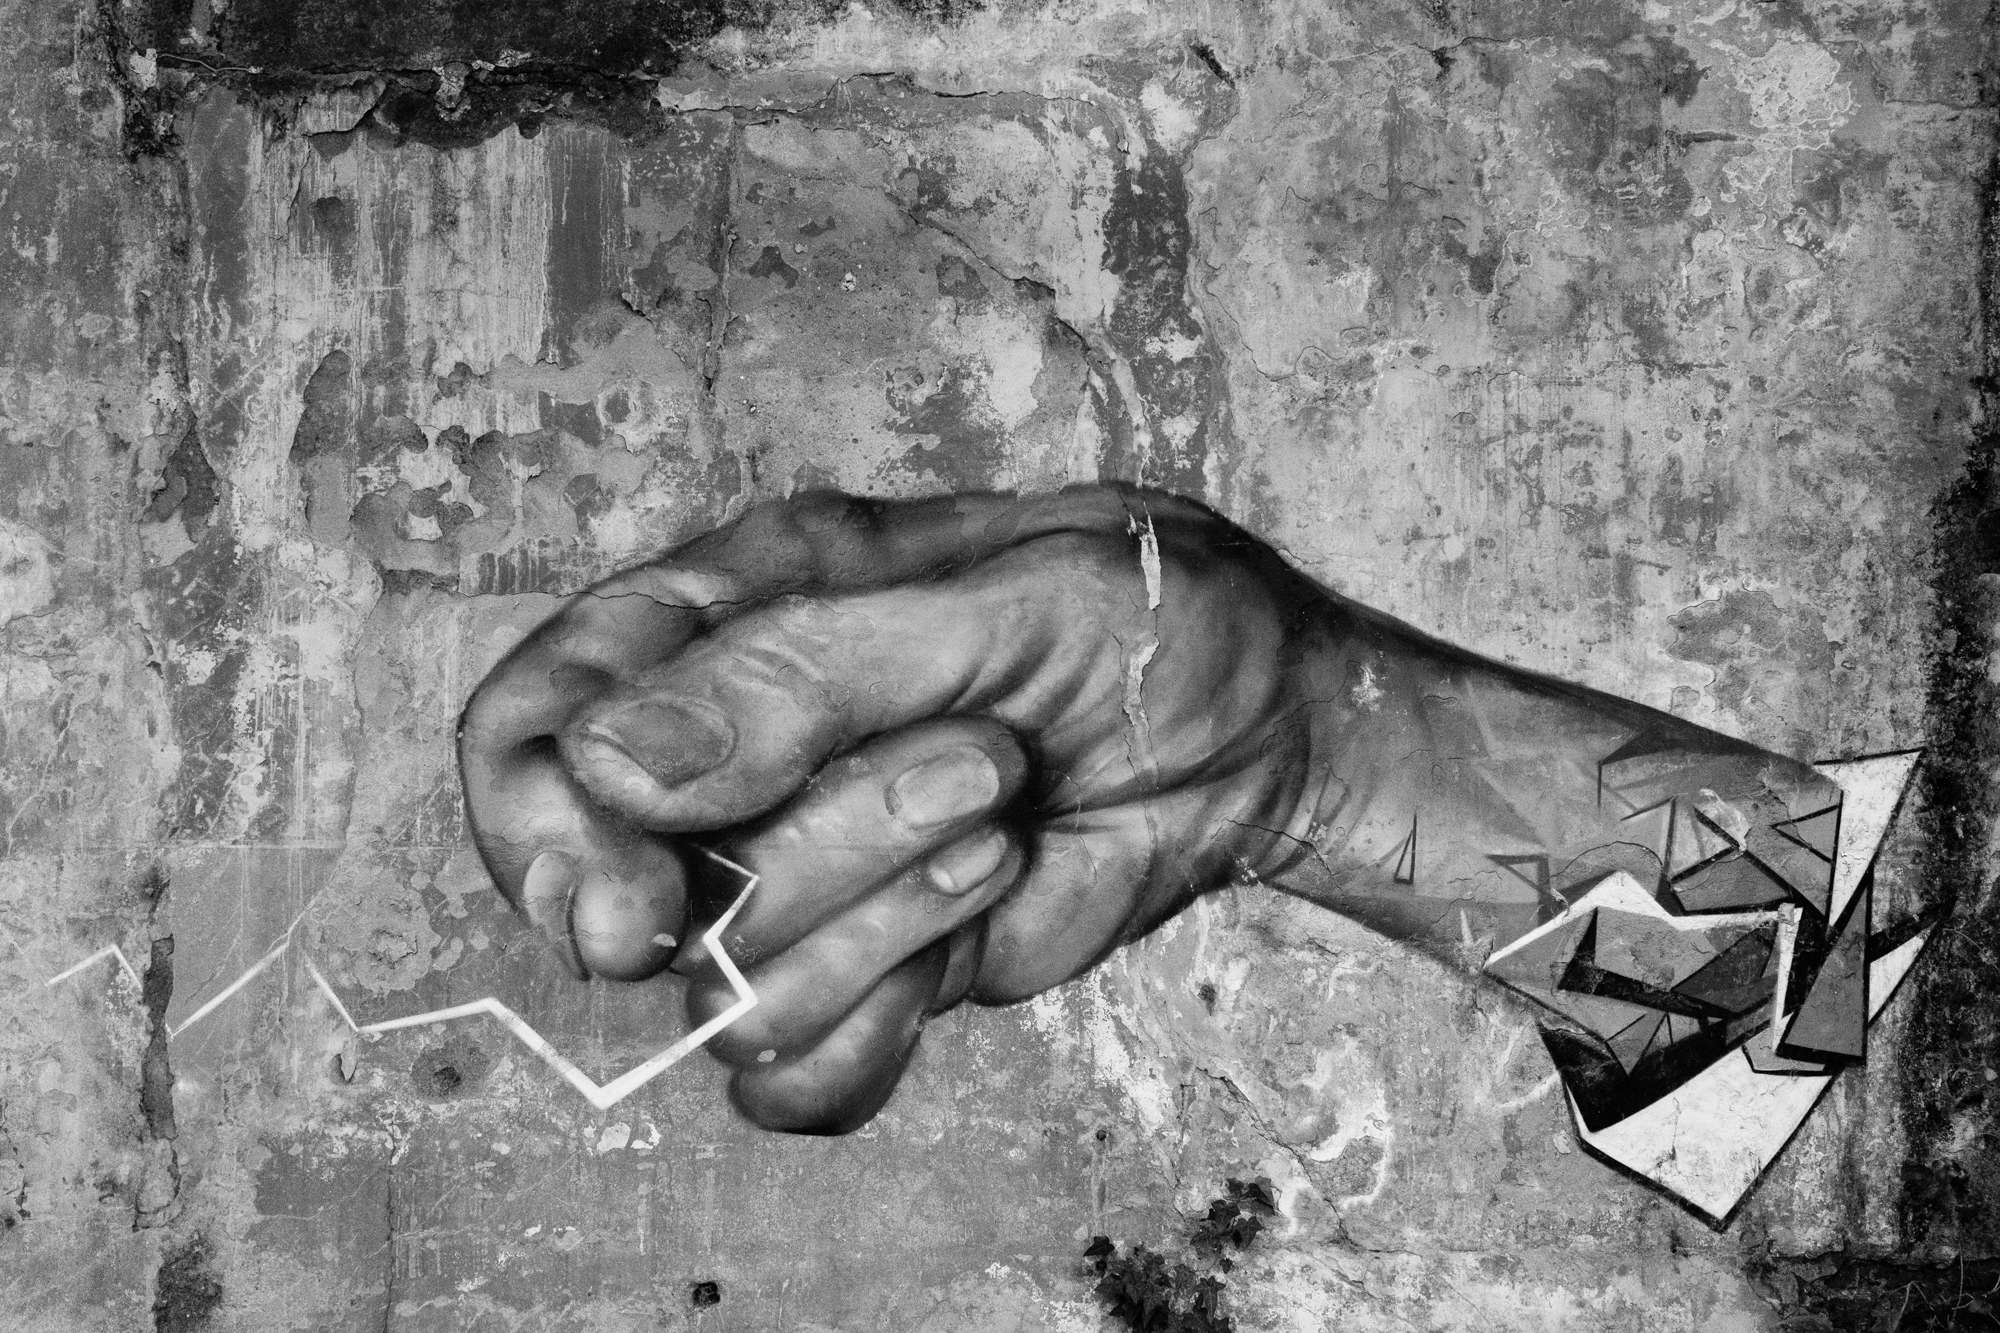 Graffiti of a hand with lightning